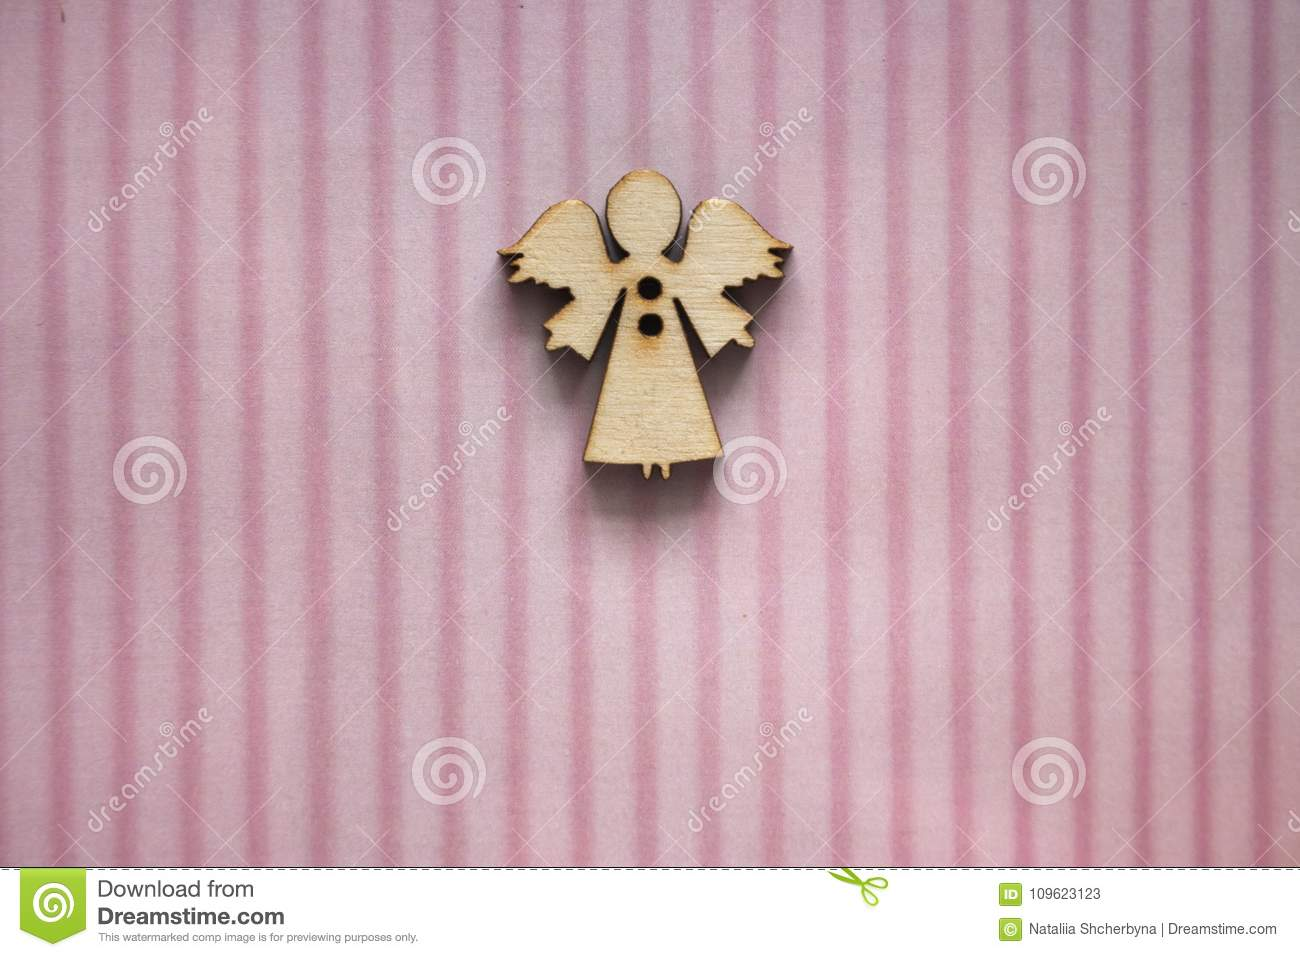 Small wooden angel figure on pink striped background. Greeting card design. Gift and present concept. Birthday background.